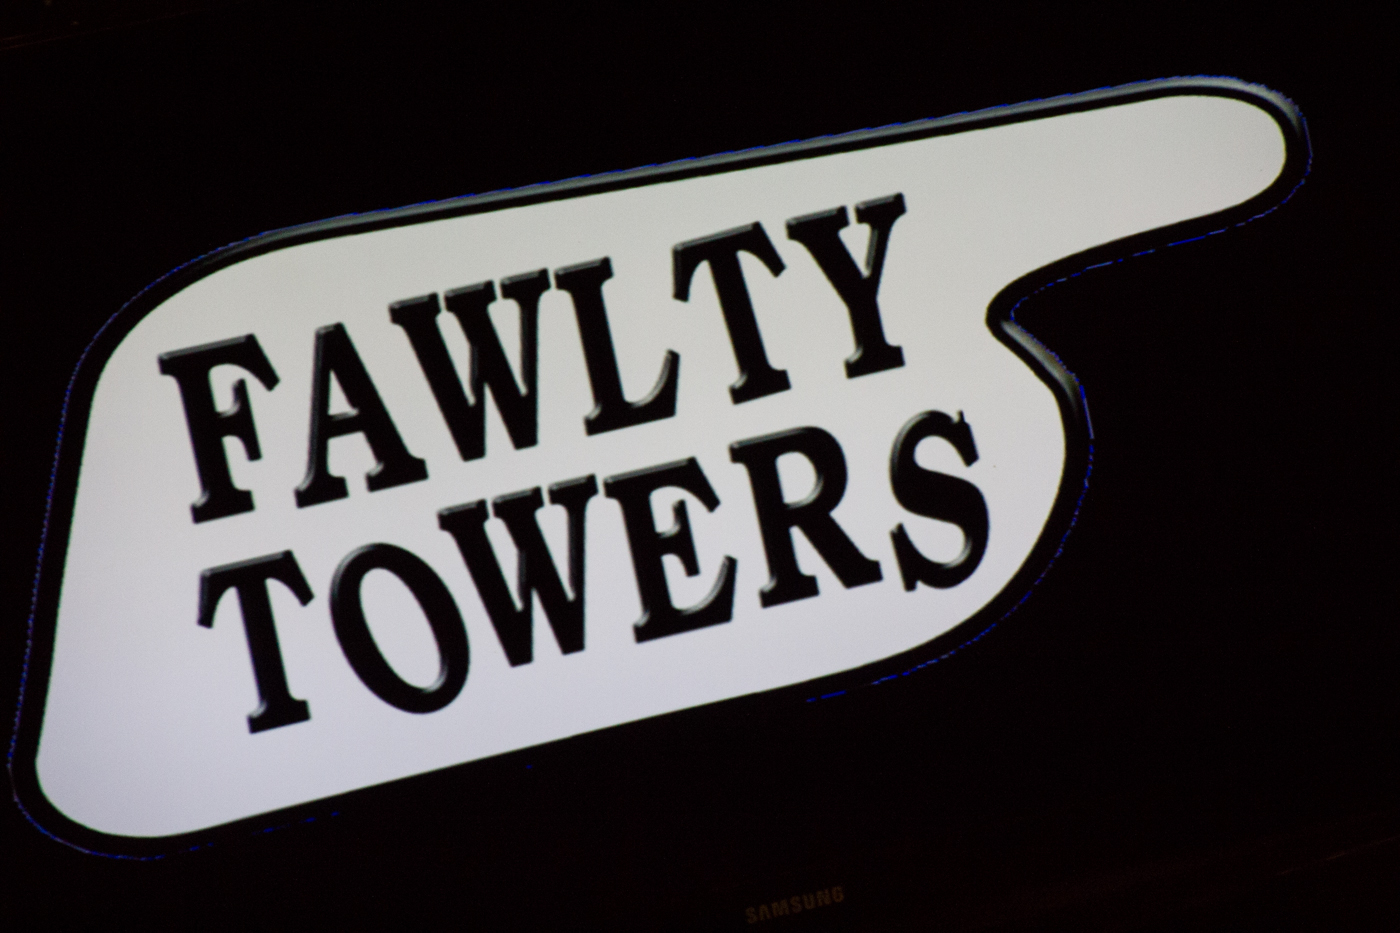 Fawlty Towers (1)